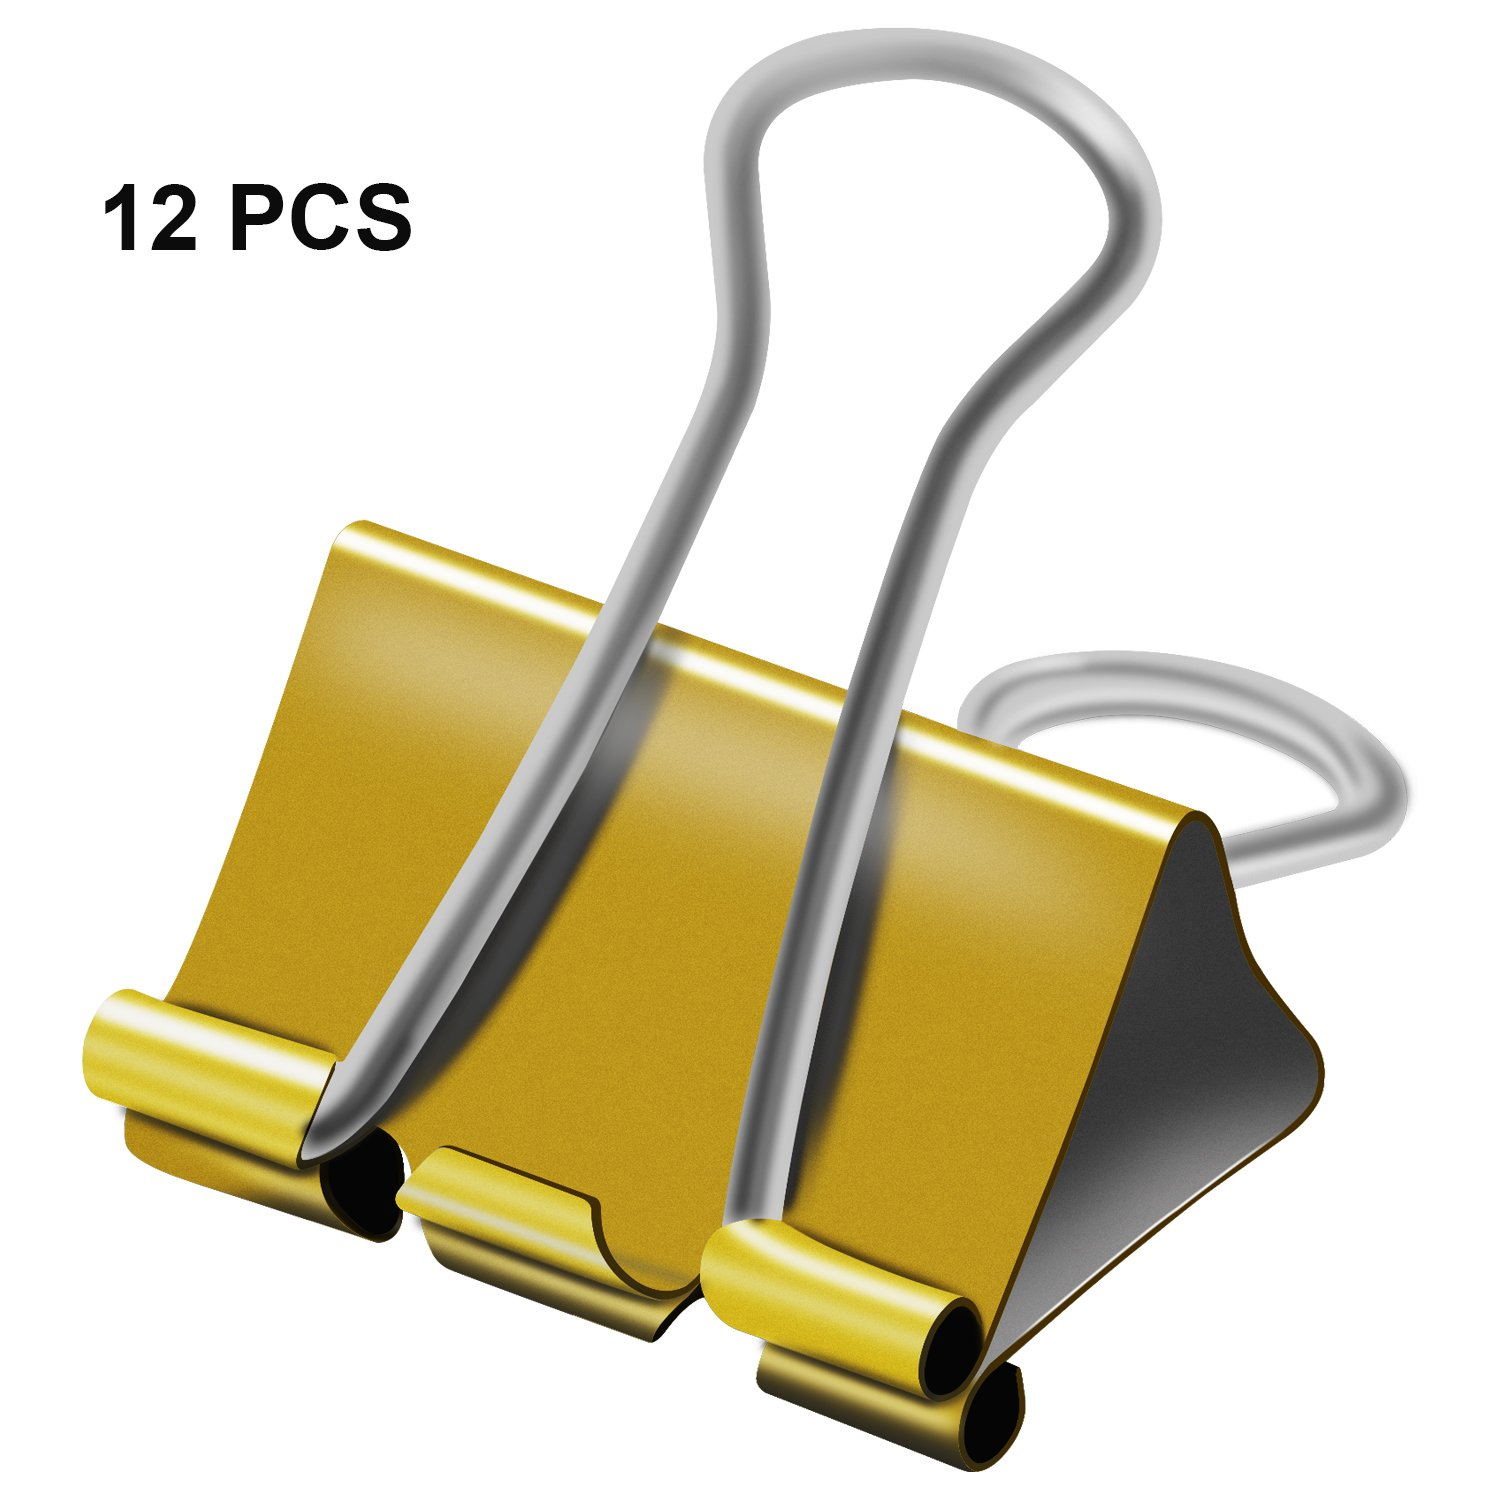 Gold Medium Metal Binder Clips of 1-1/4 inch, Colored paper clamp, Assorted Sizes assortment, For Office School Fold back clip, etc. 0.75 / 1.25 / 2 in (1.25 inch / 32 mm (Gold), 12 PCS (Gold))